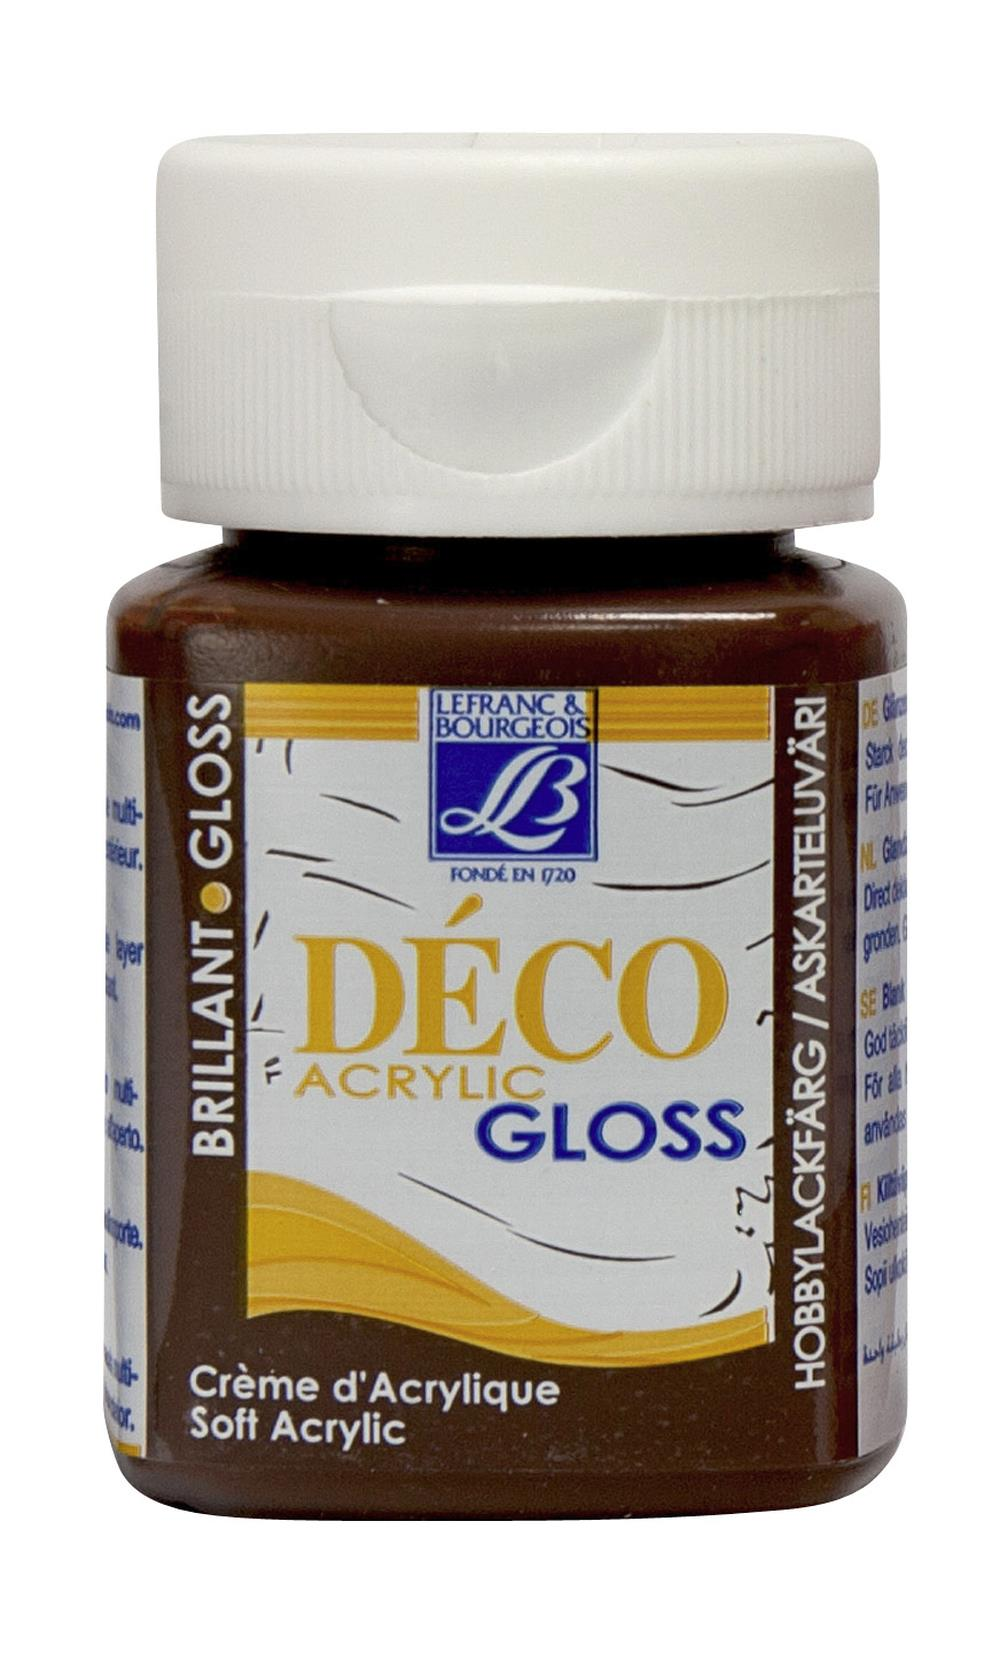 Hobbyfärg L&B Deco Gloss Akryl 50ml  Brown 488 (4F) Utgår